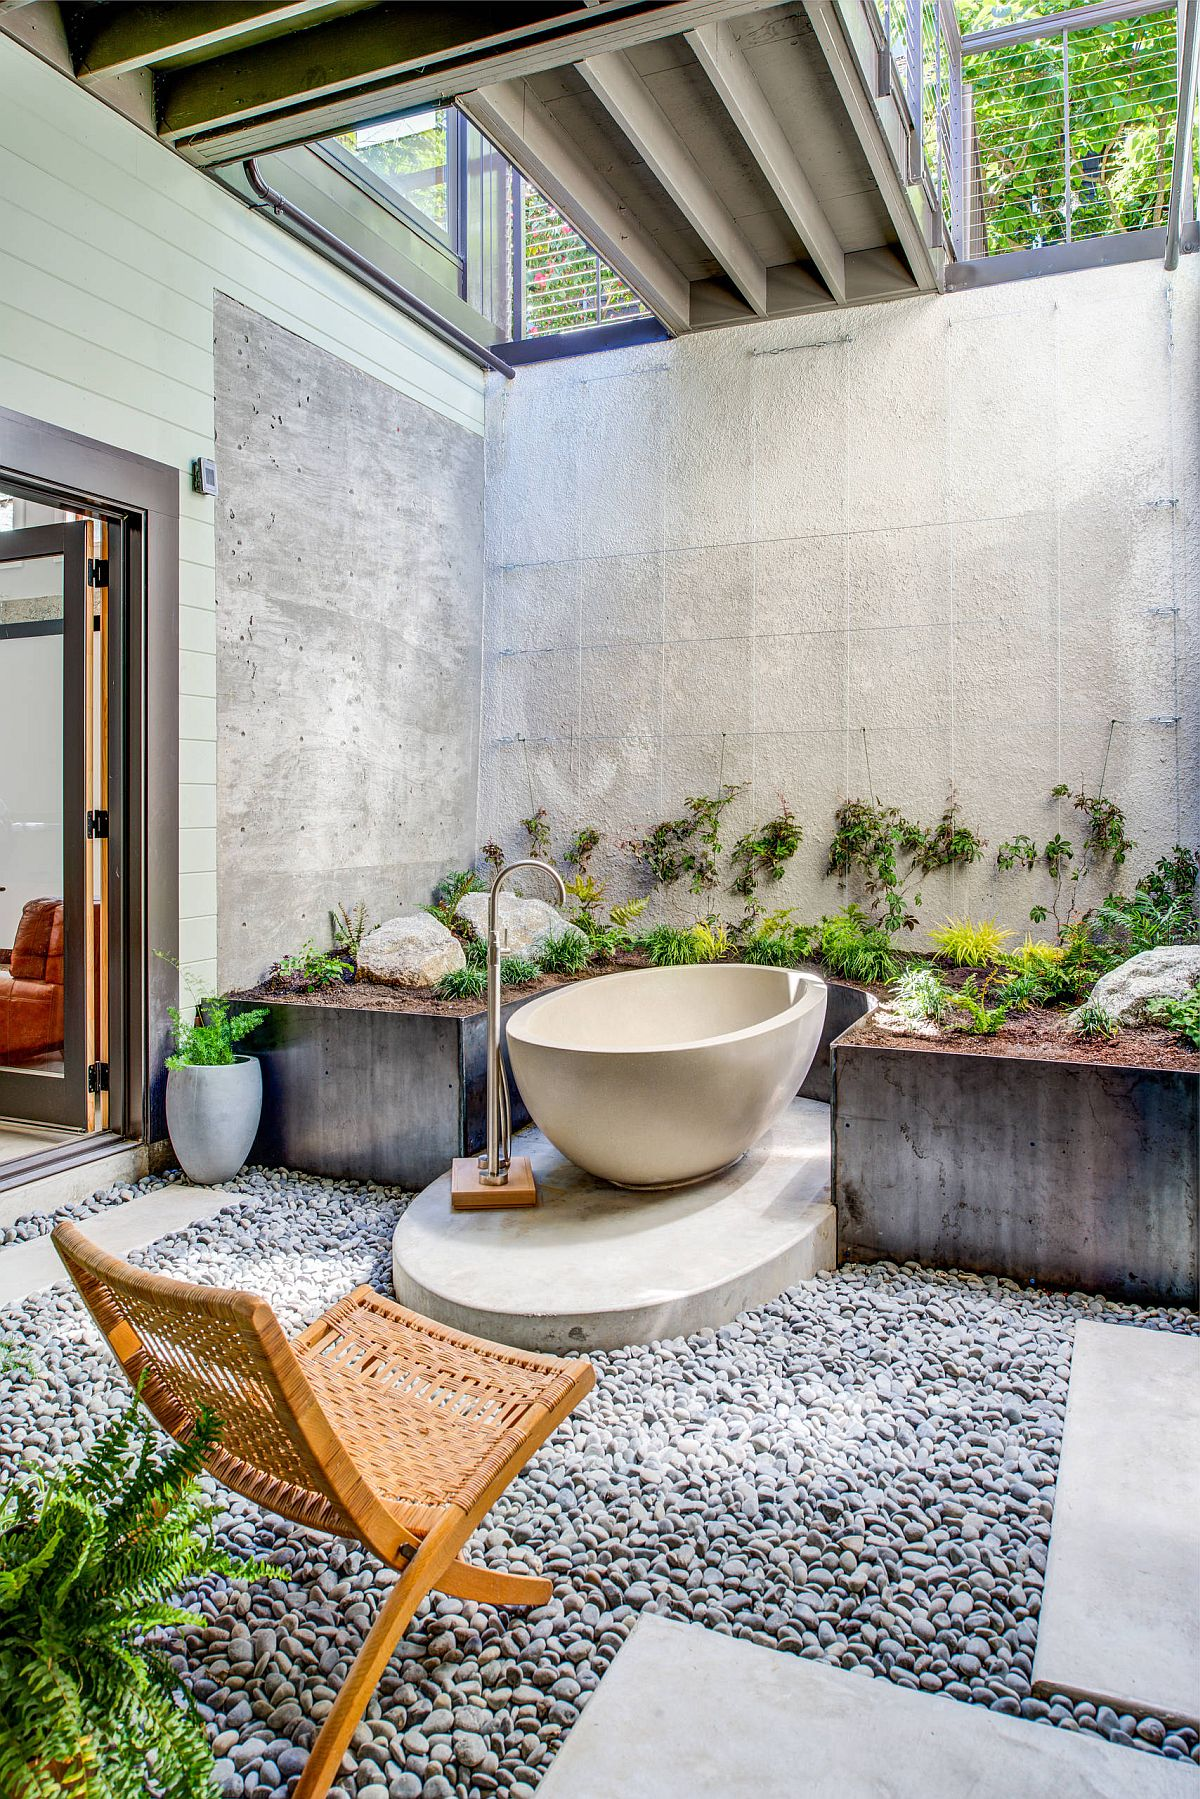 Open-and-elegant-tropical-bathroom-in-San-Francisco-home-is-a-world-in-itself-22954